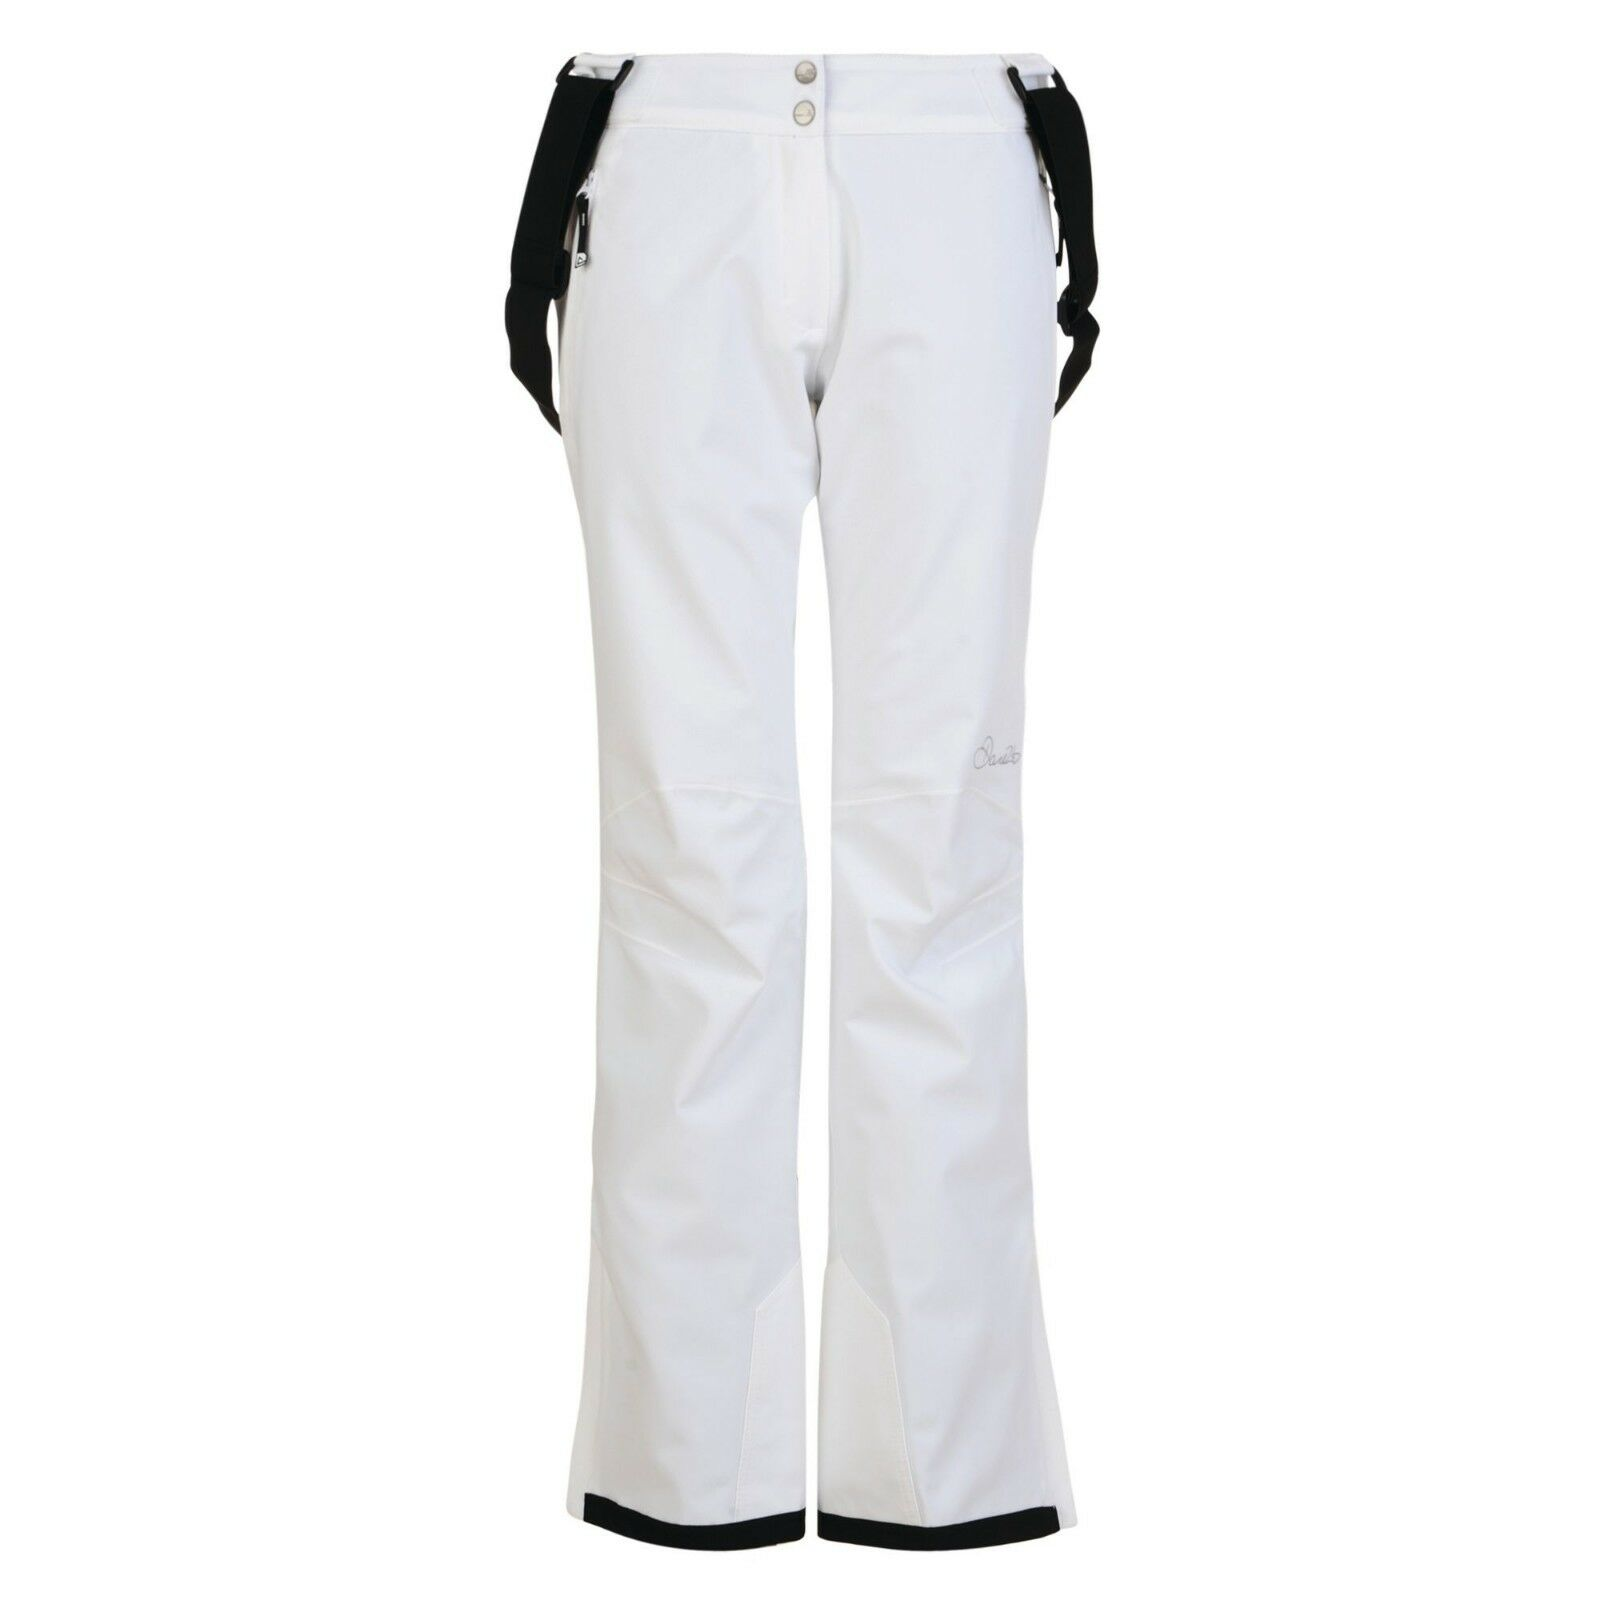 DARE 2B LADIES STAND FOR II SKI PANTS SLIM LEG SNOWBOARDING SALOPETTES WHITE